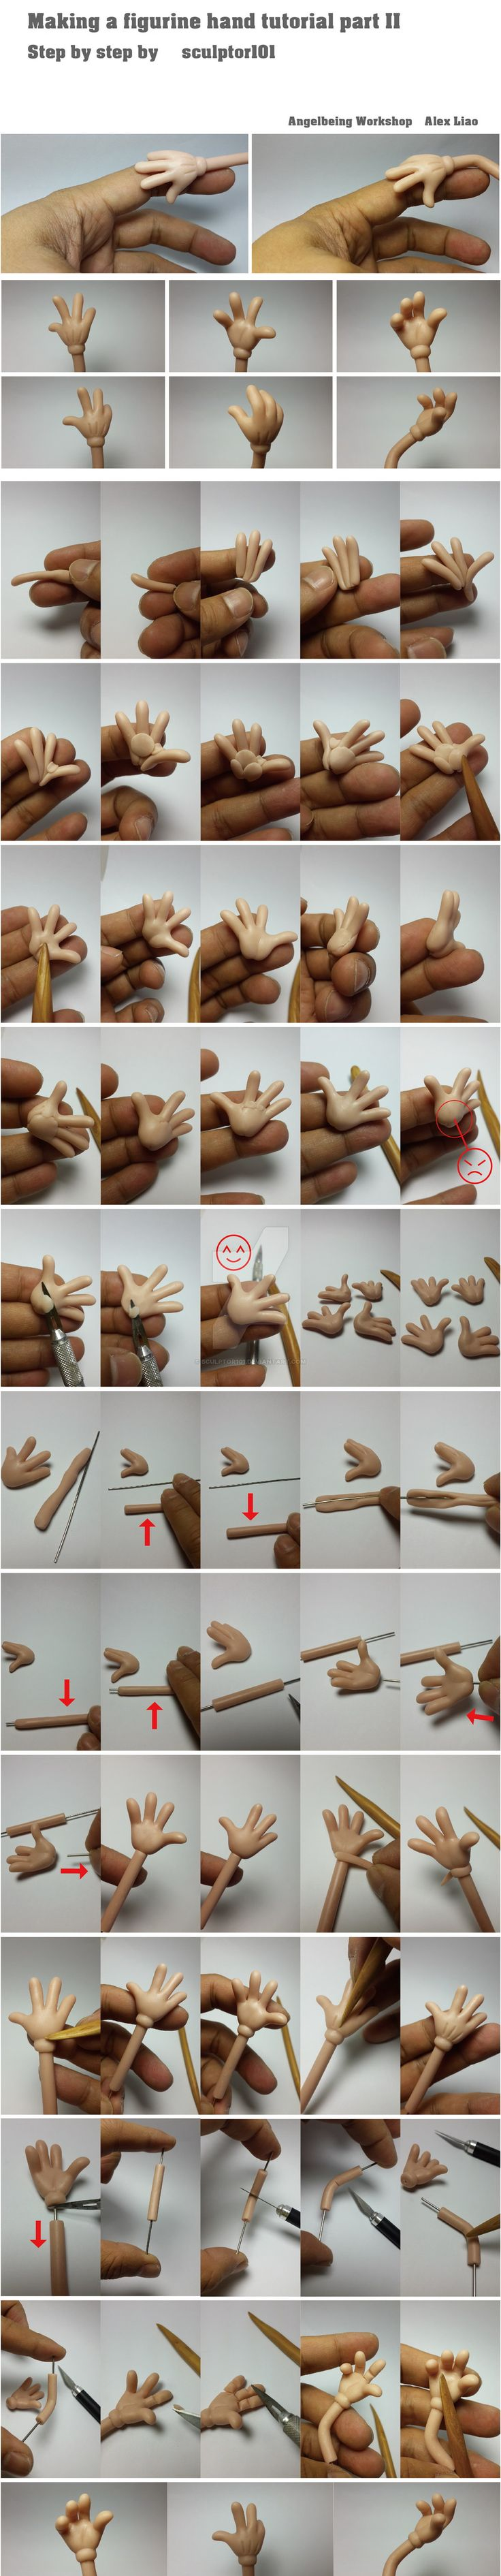 Making figurine hand tutorial part 2 by sculptor101.deviantart.com on @DeviantArt